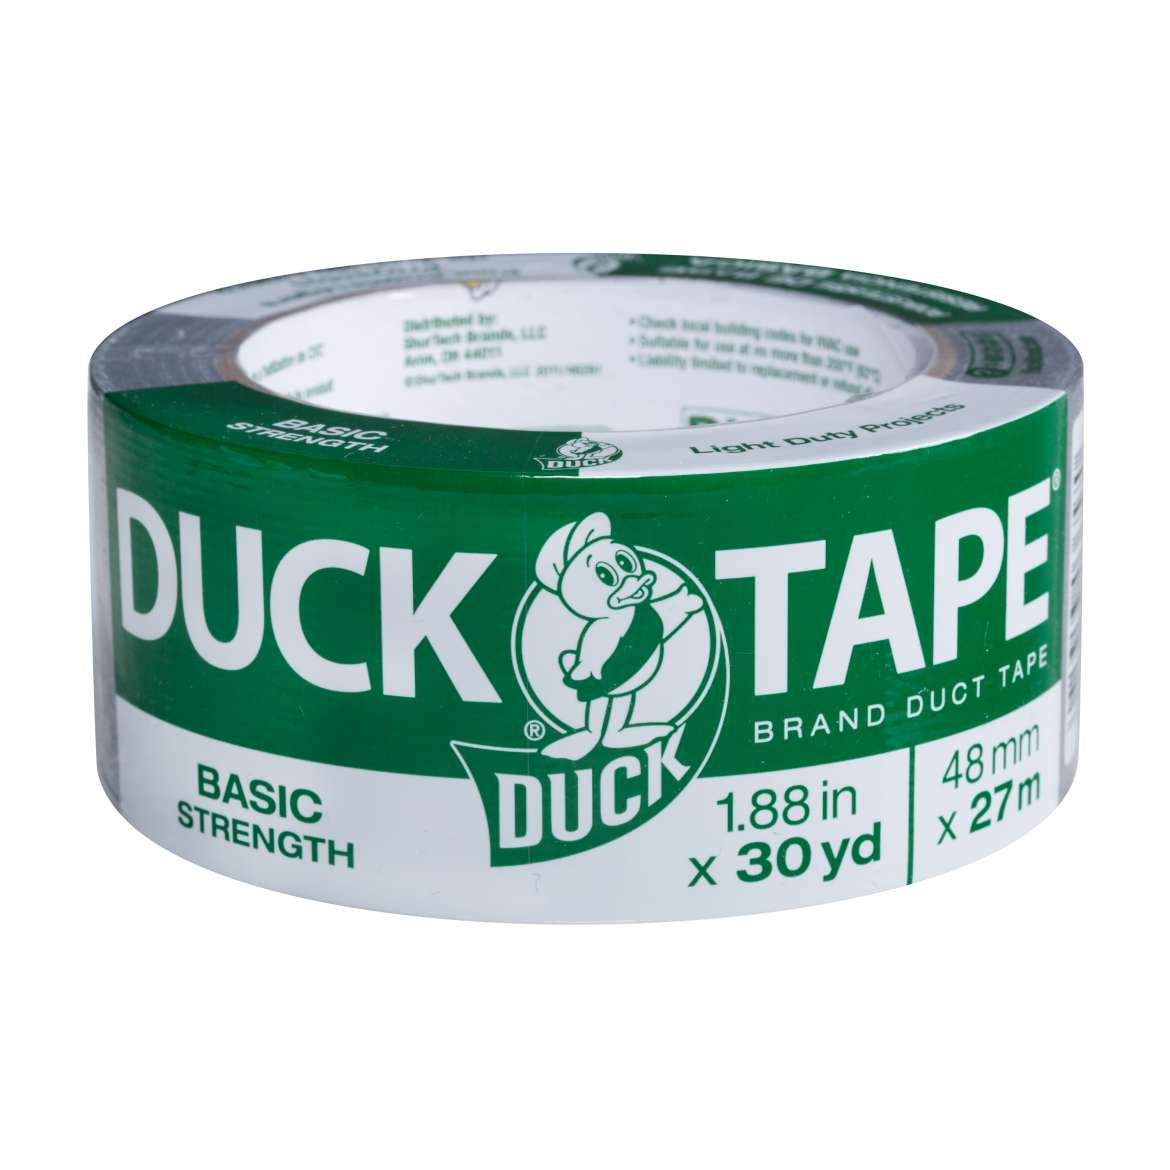 Basic Strength Duck Tape® Brand Duct Tape - Silver, 1.88 in. x 30 yd. Image